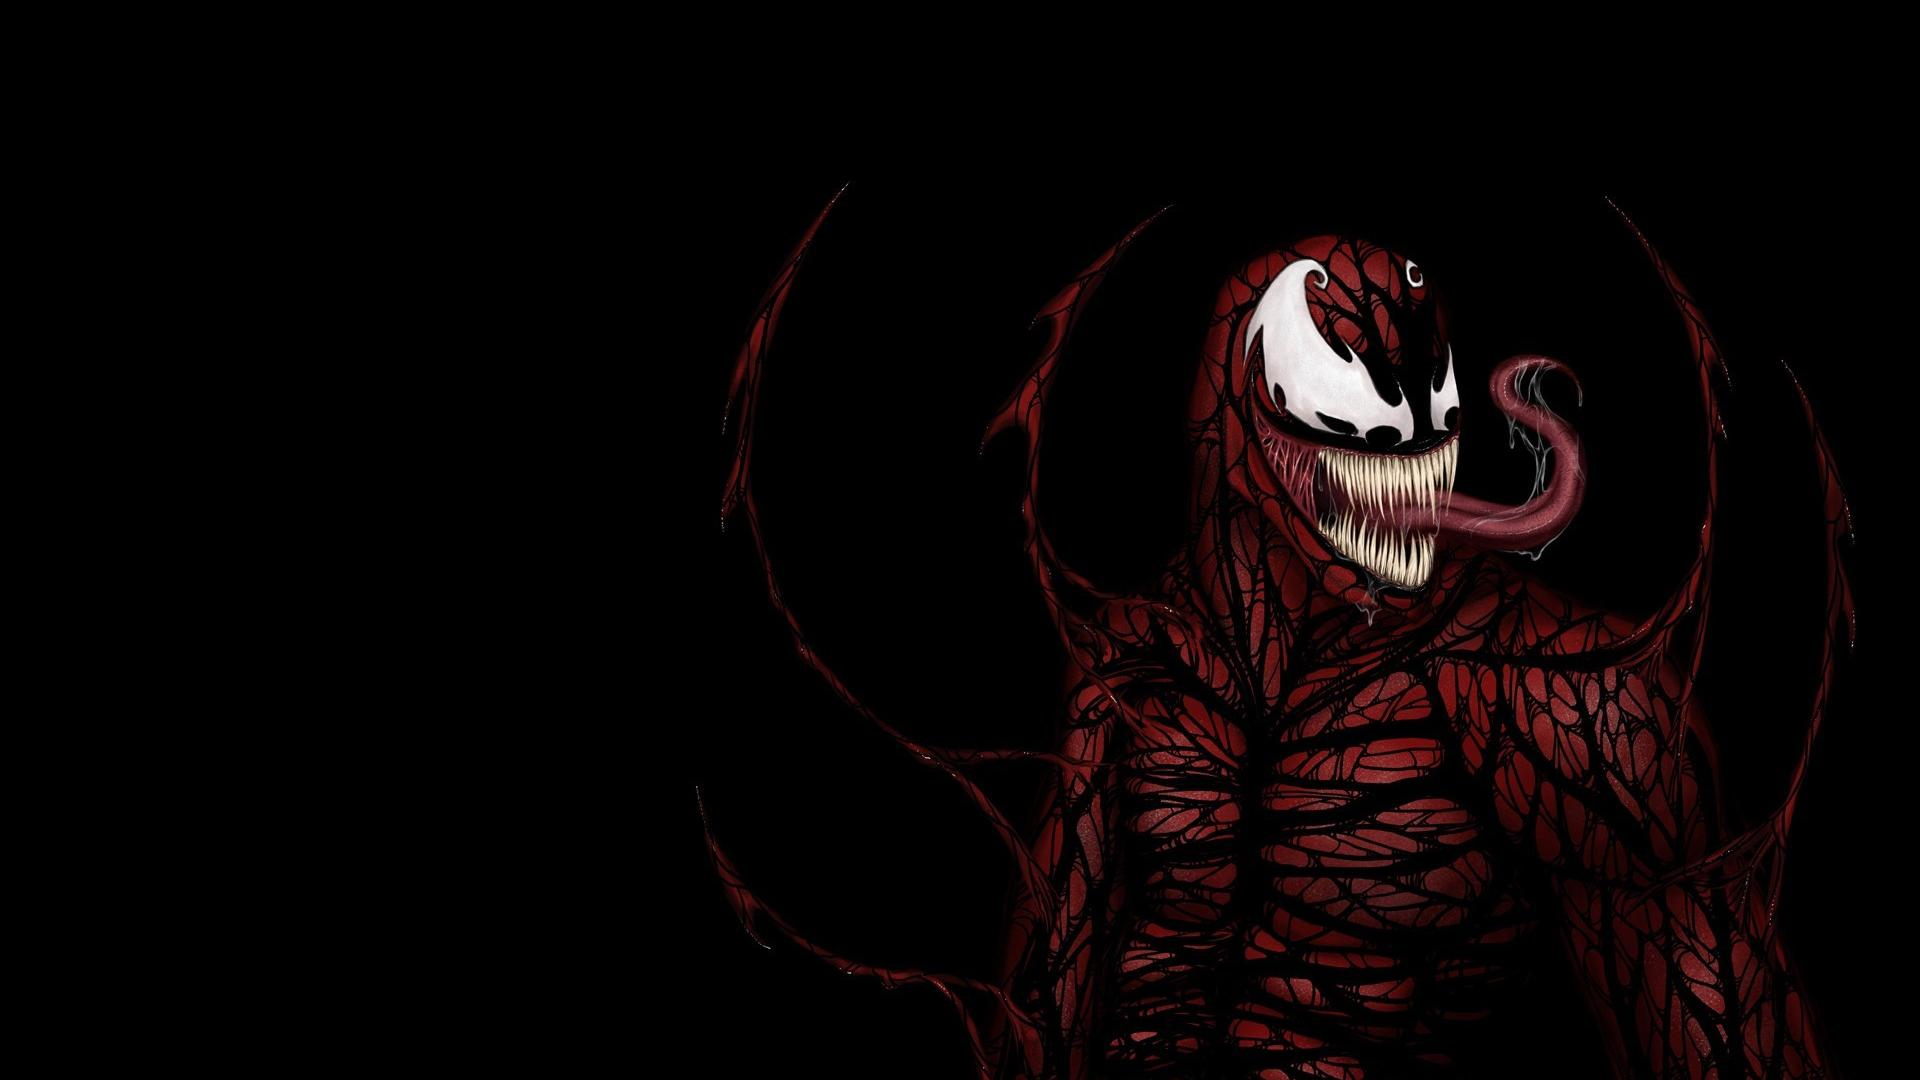 CARNAGE WALLPAPERS FREE Wallpapers Background images 1920x1080